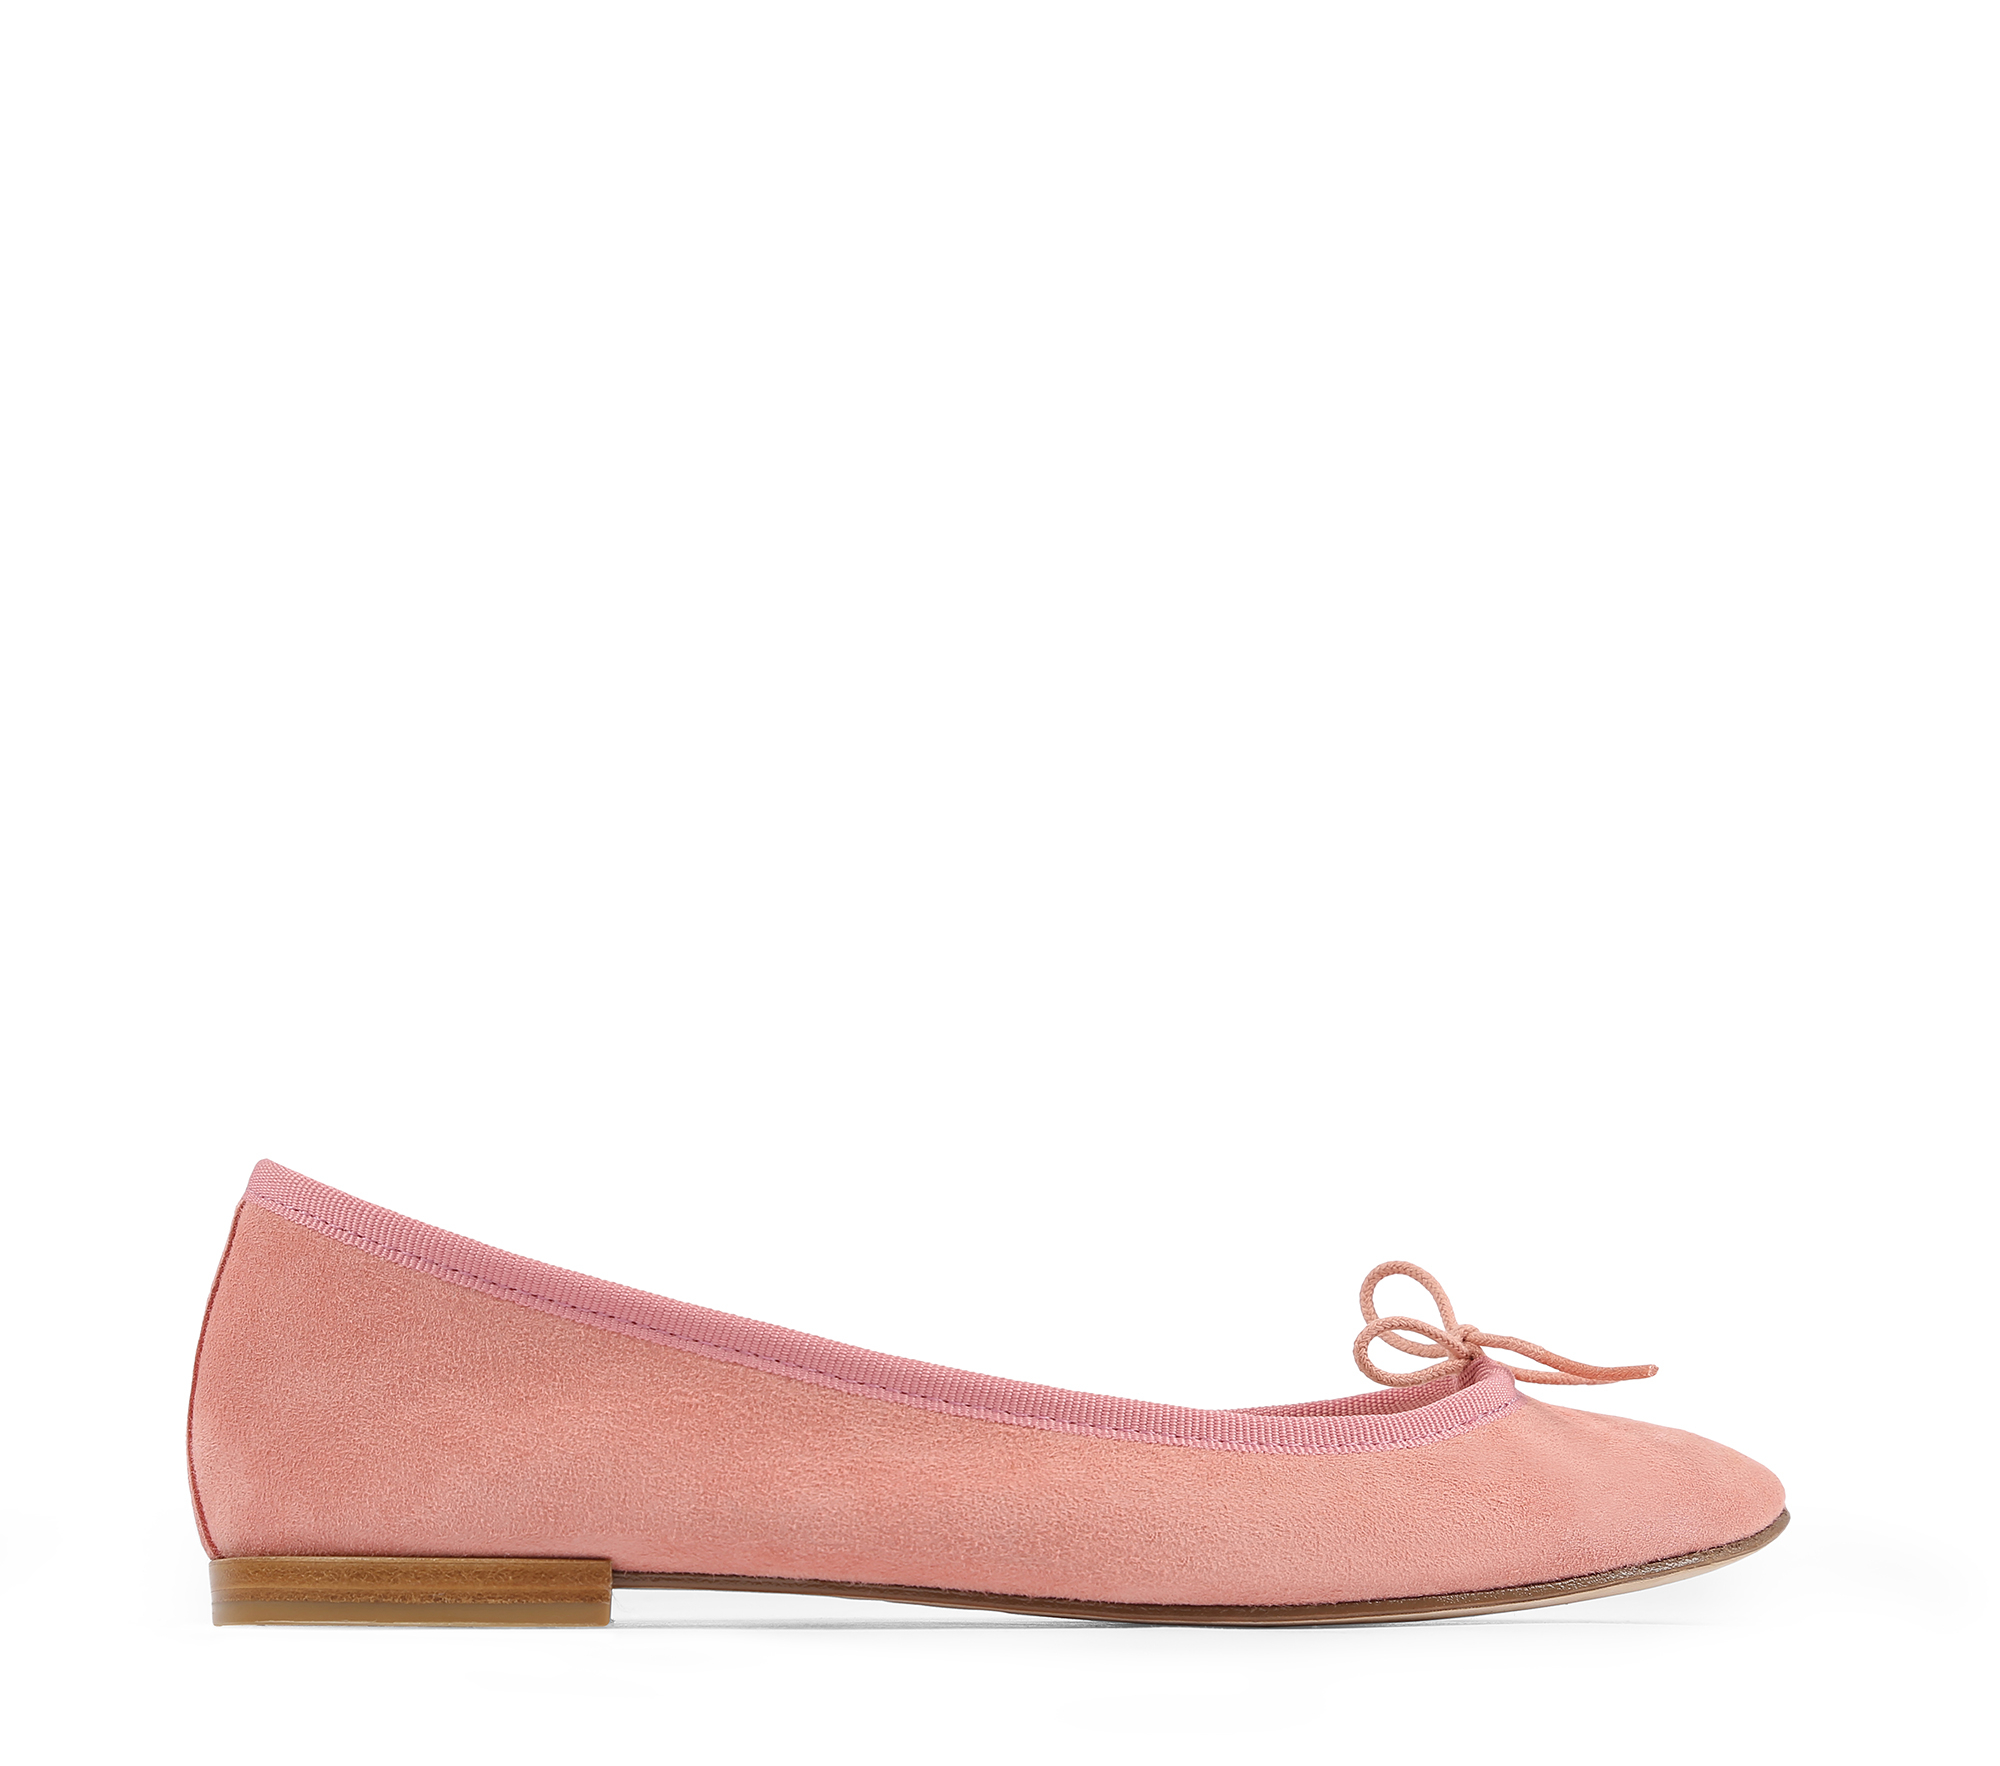 a2c8753775caf Women Ballerinas | REPETTO Official | Free delivery for orders over €100